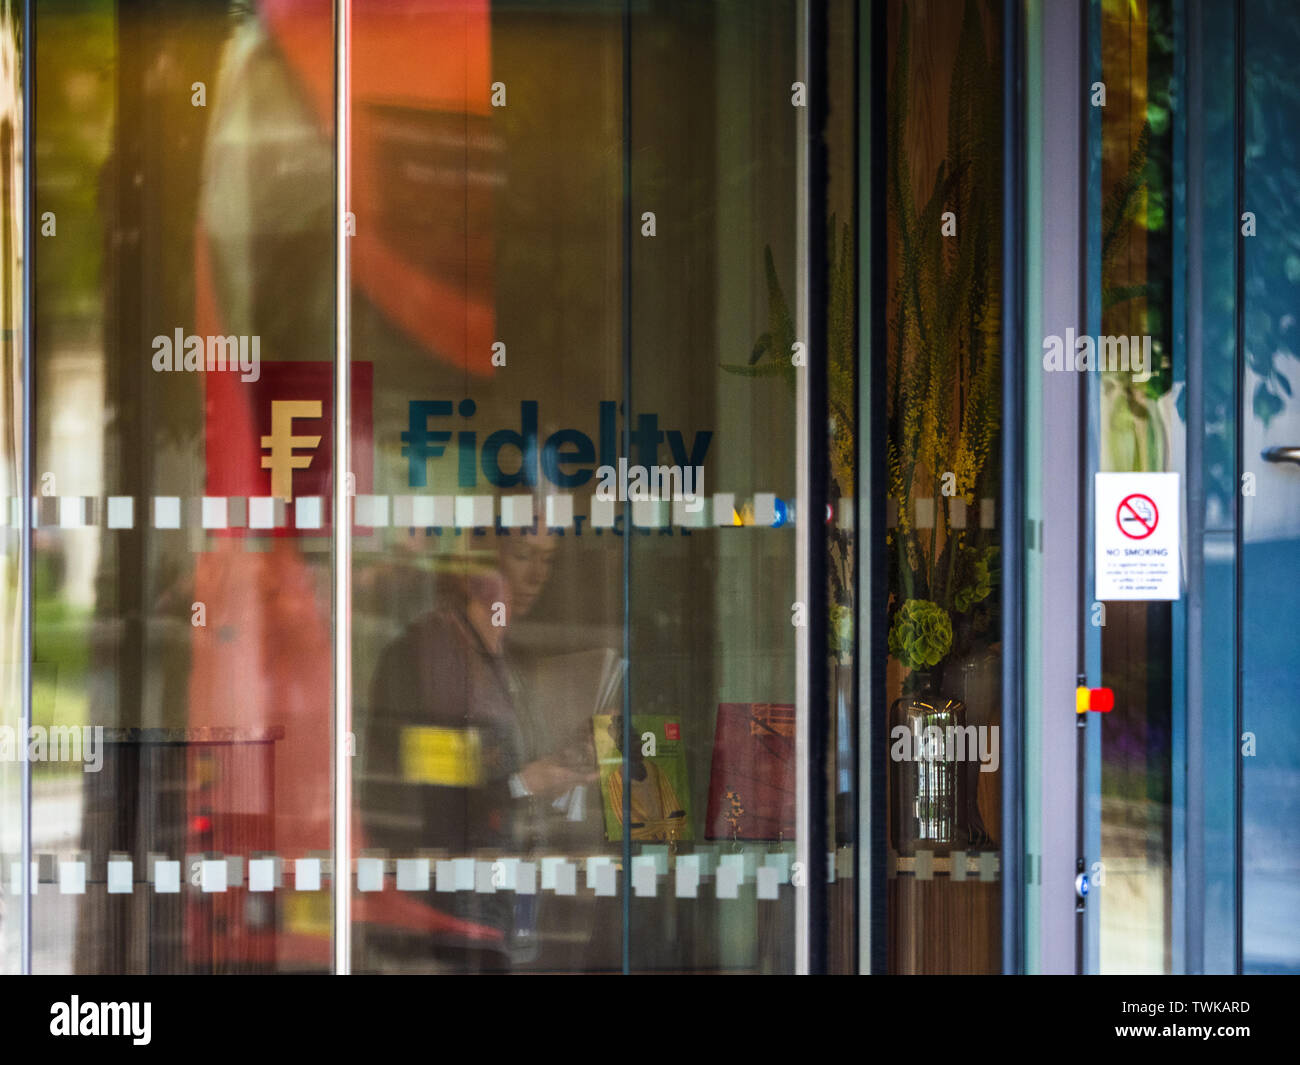 Fidelity International London Offices in Cannon Street in the City of London Financial District - Stock Image